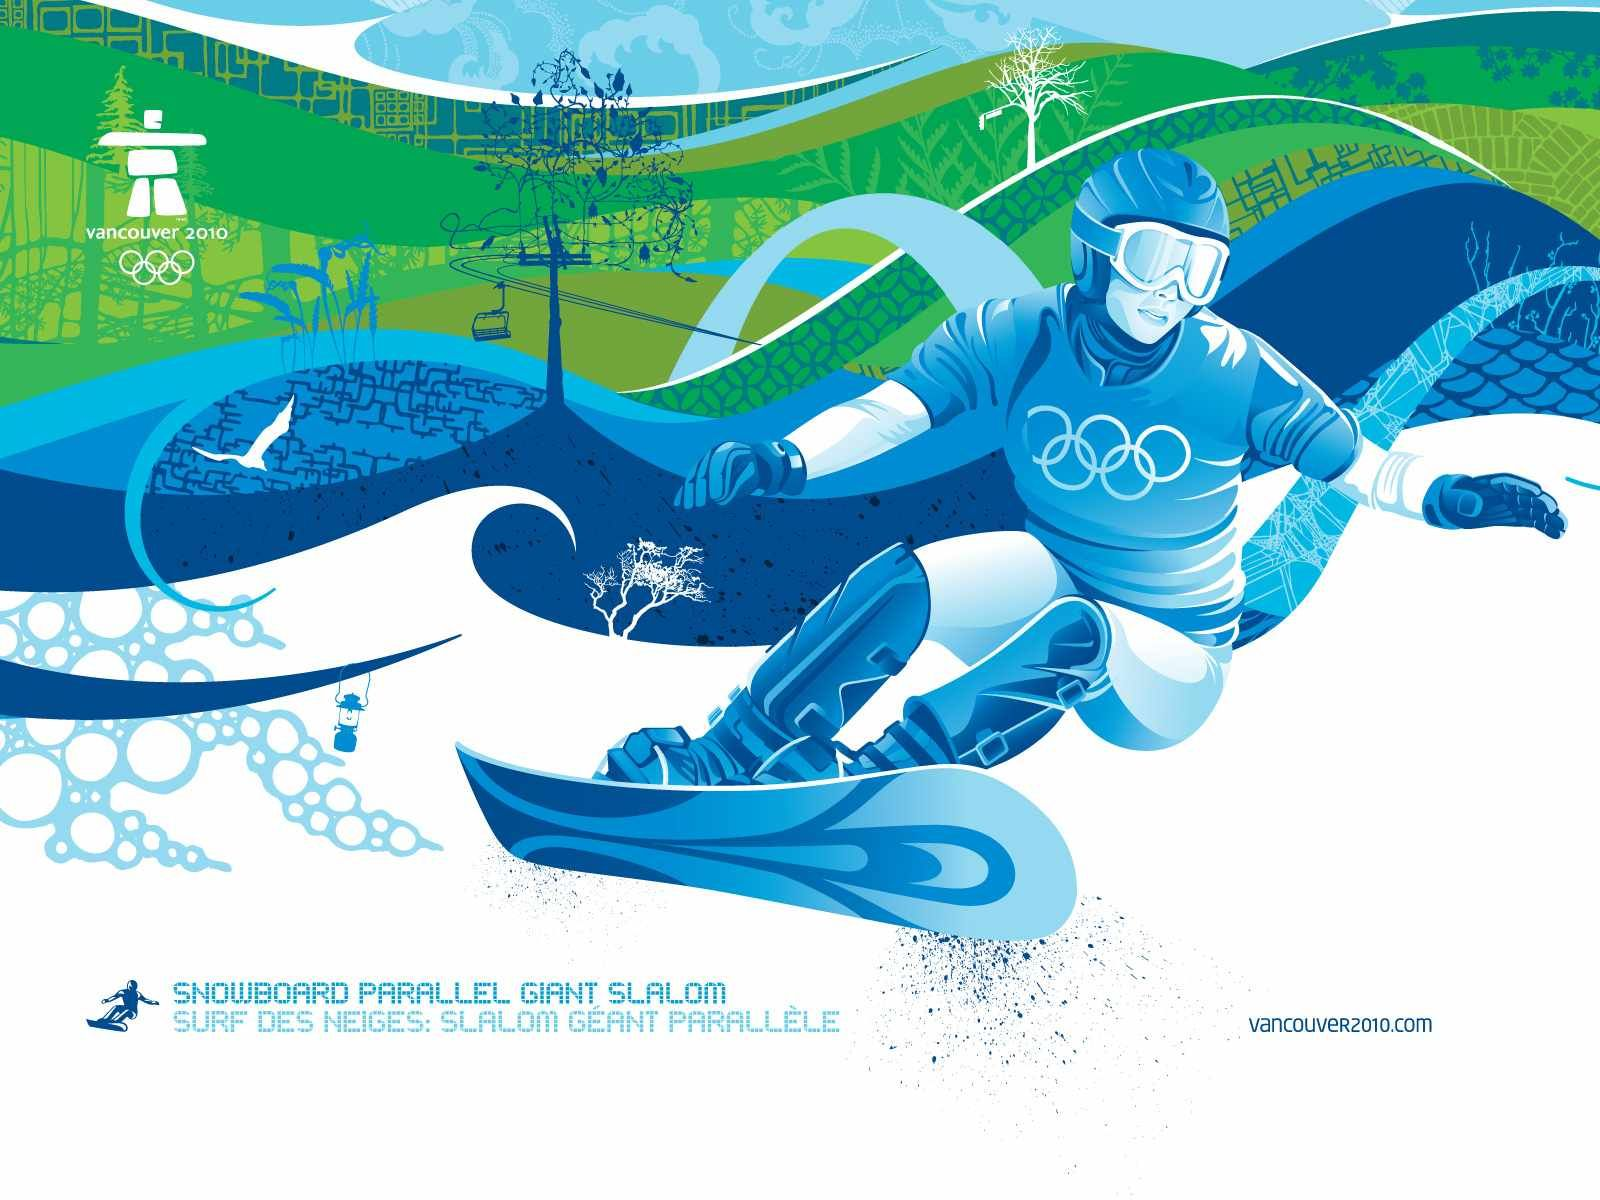 Vancouver 2010 Snowboard Parallel Giant Slalom Winter Olympic Games Winter Olympics Snowboard